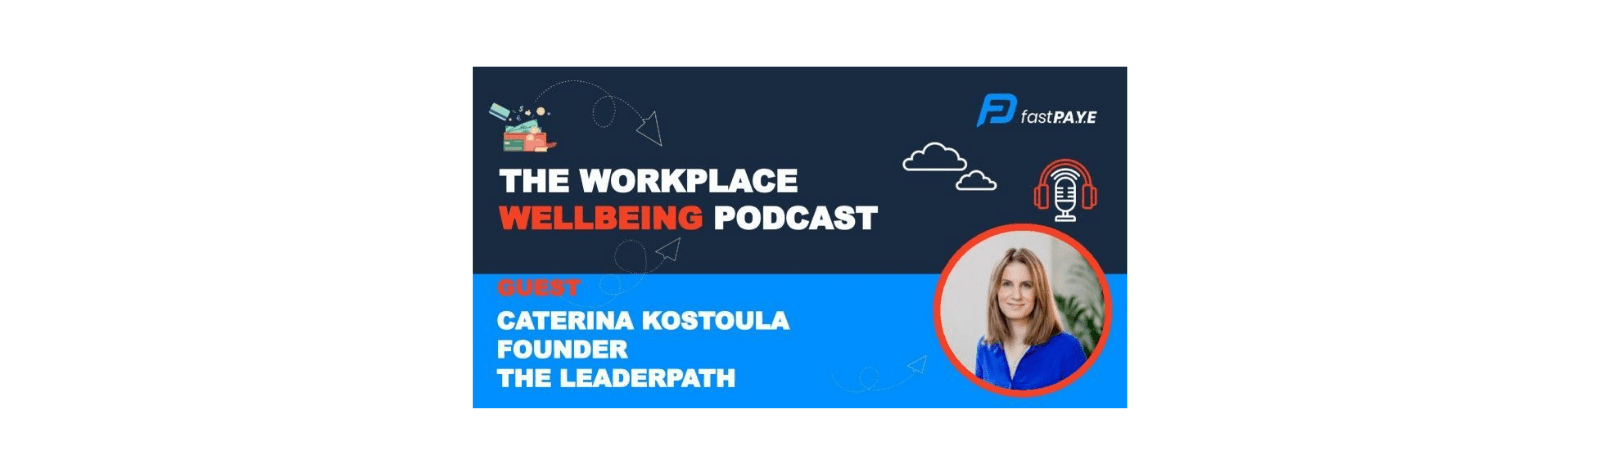 The Workplace Wellbeing Podcast | The impact of bad meetings on wellbeing at work